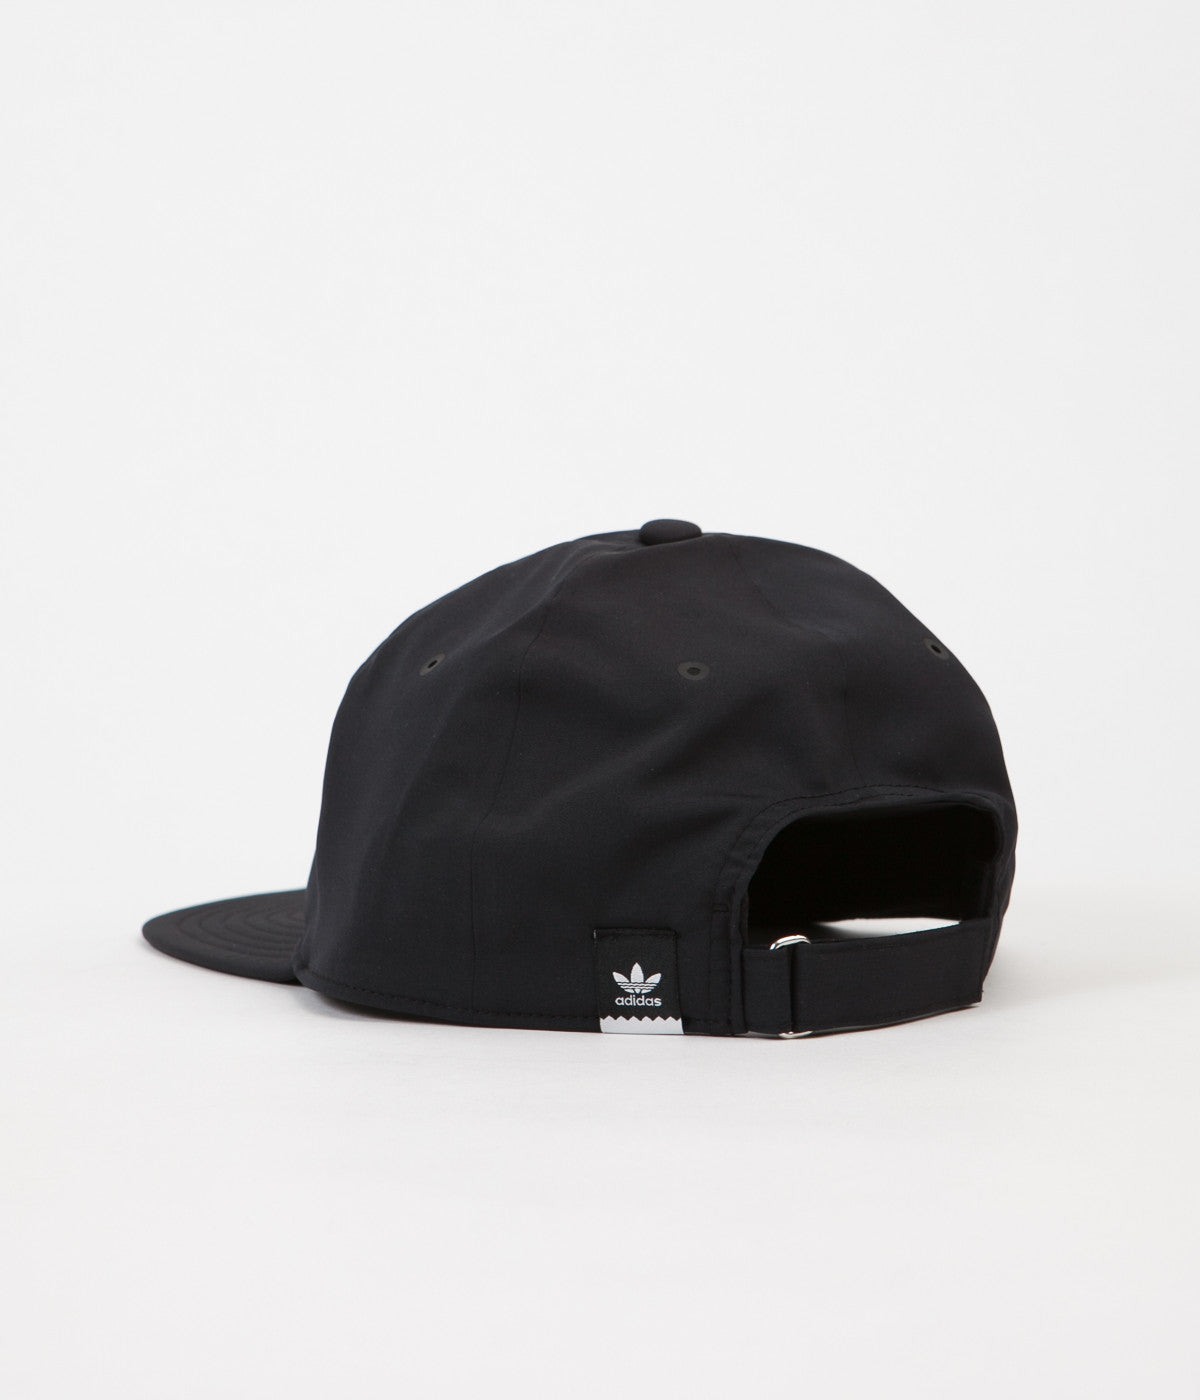 Adidas Tech Crusher Cap - Black